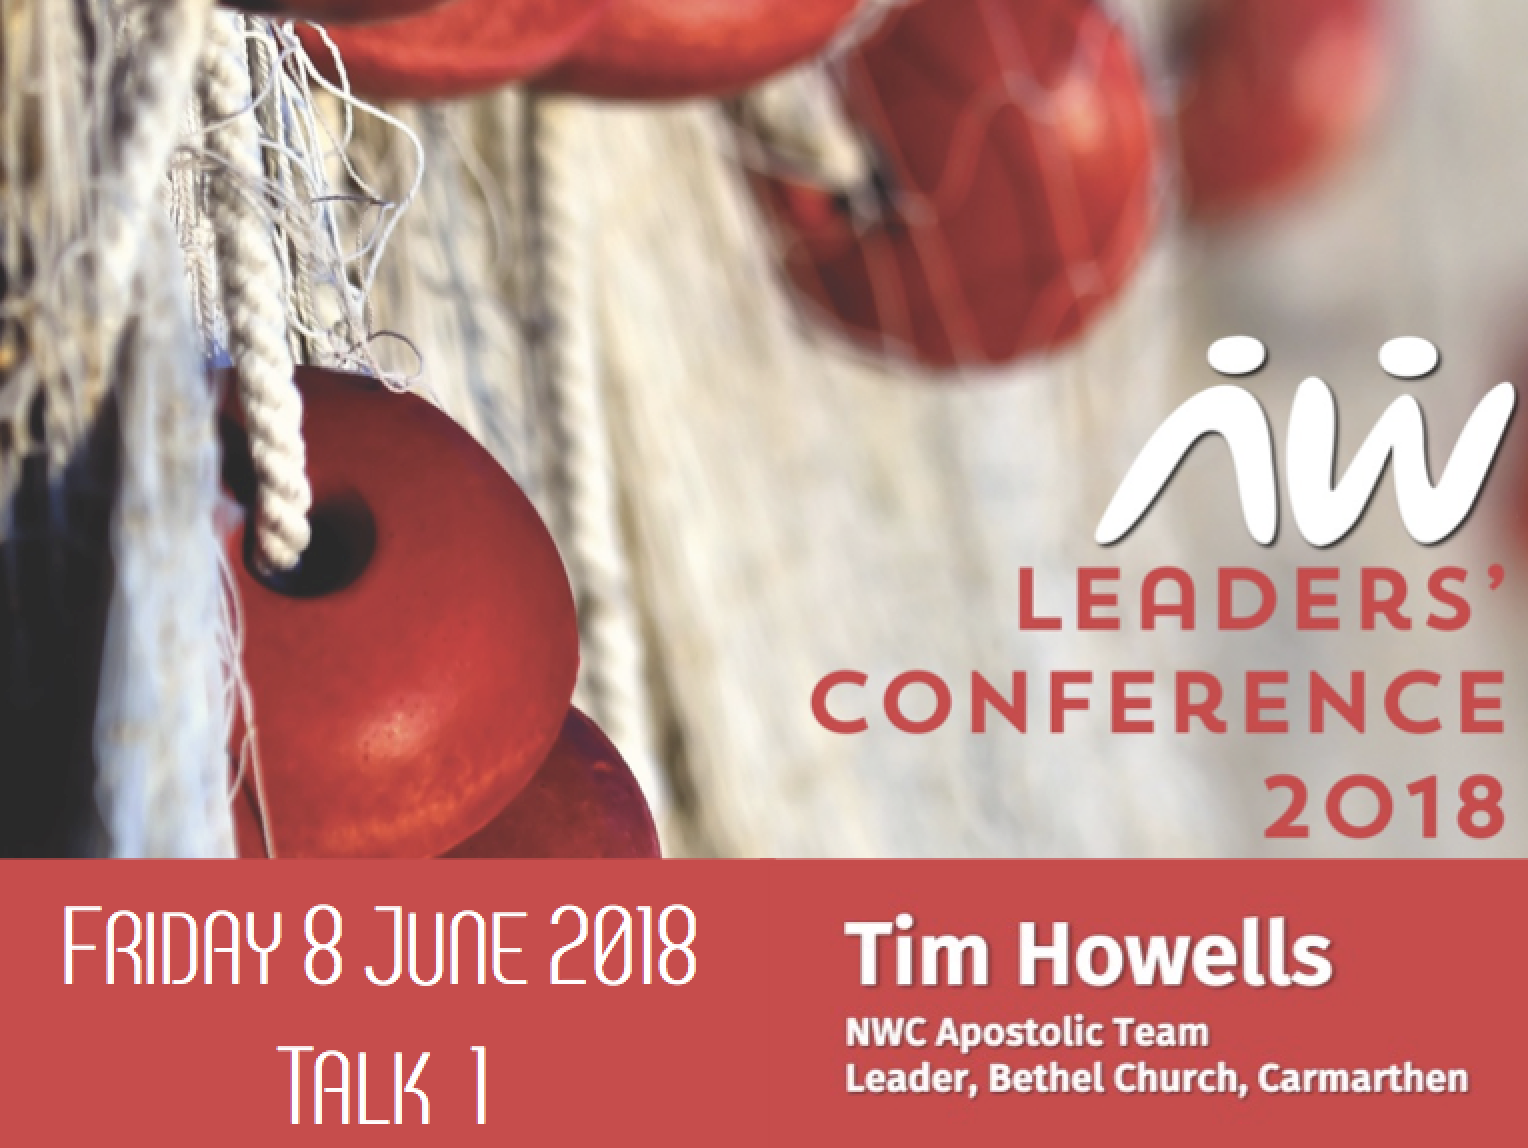 Leaders' Conference 18: Tim Howells talk